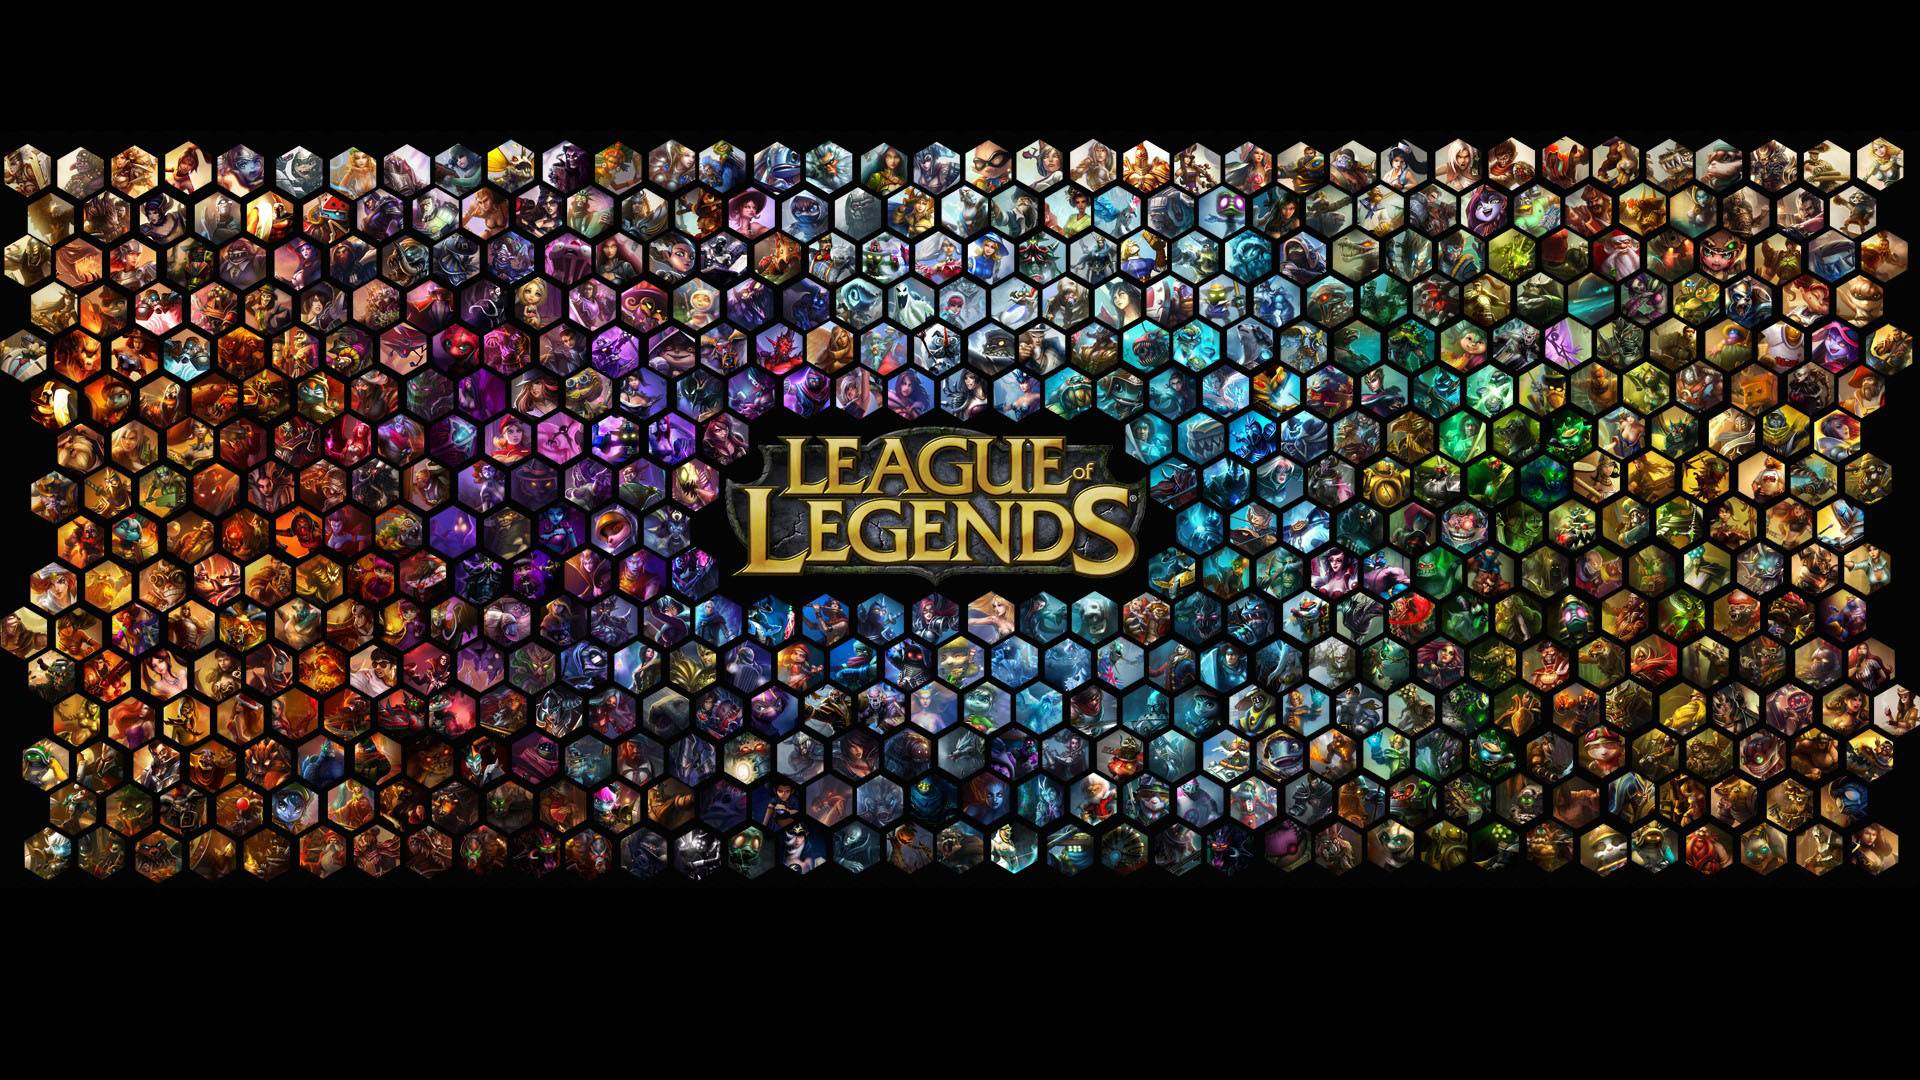 League of Legends wallpaper 190